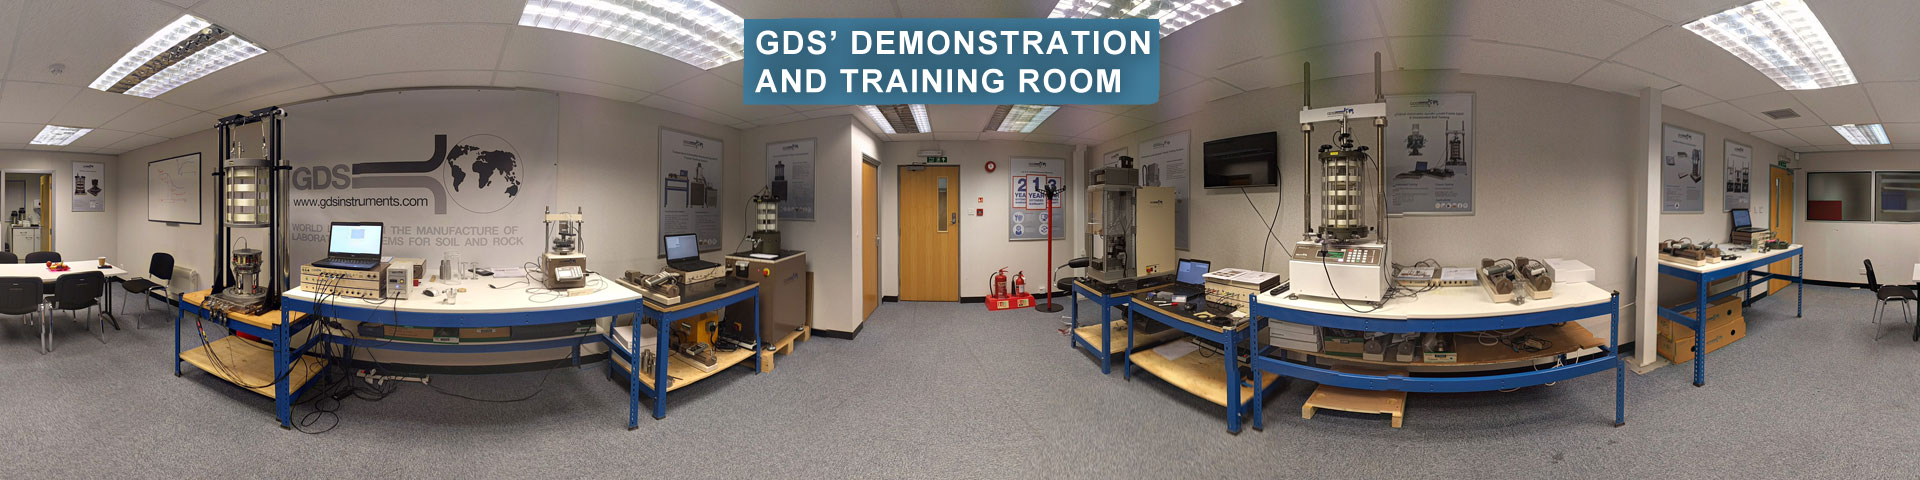 Our purpose built demonstration and training room provides you the opportunity to gets hands on with our apparatus